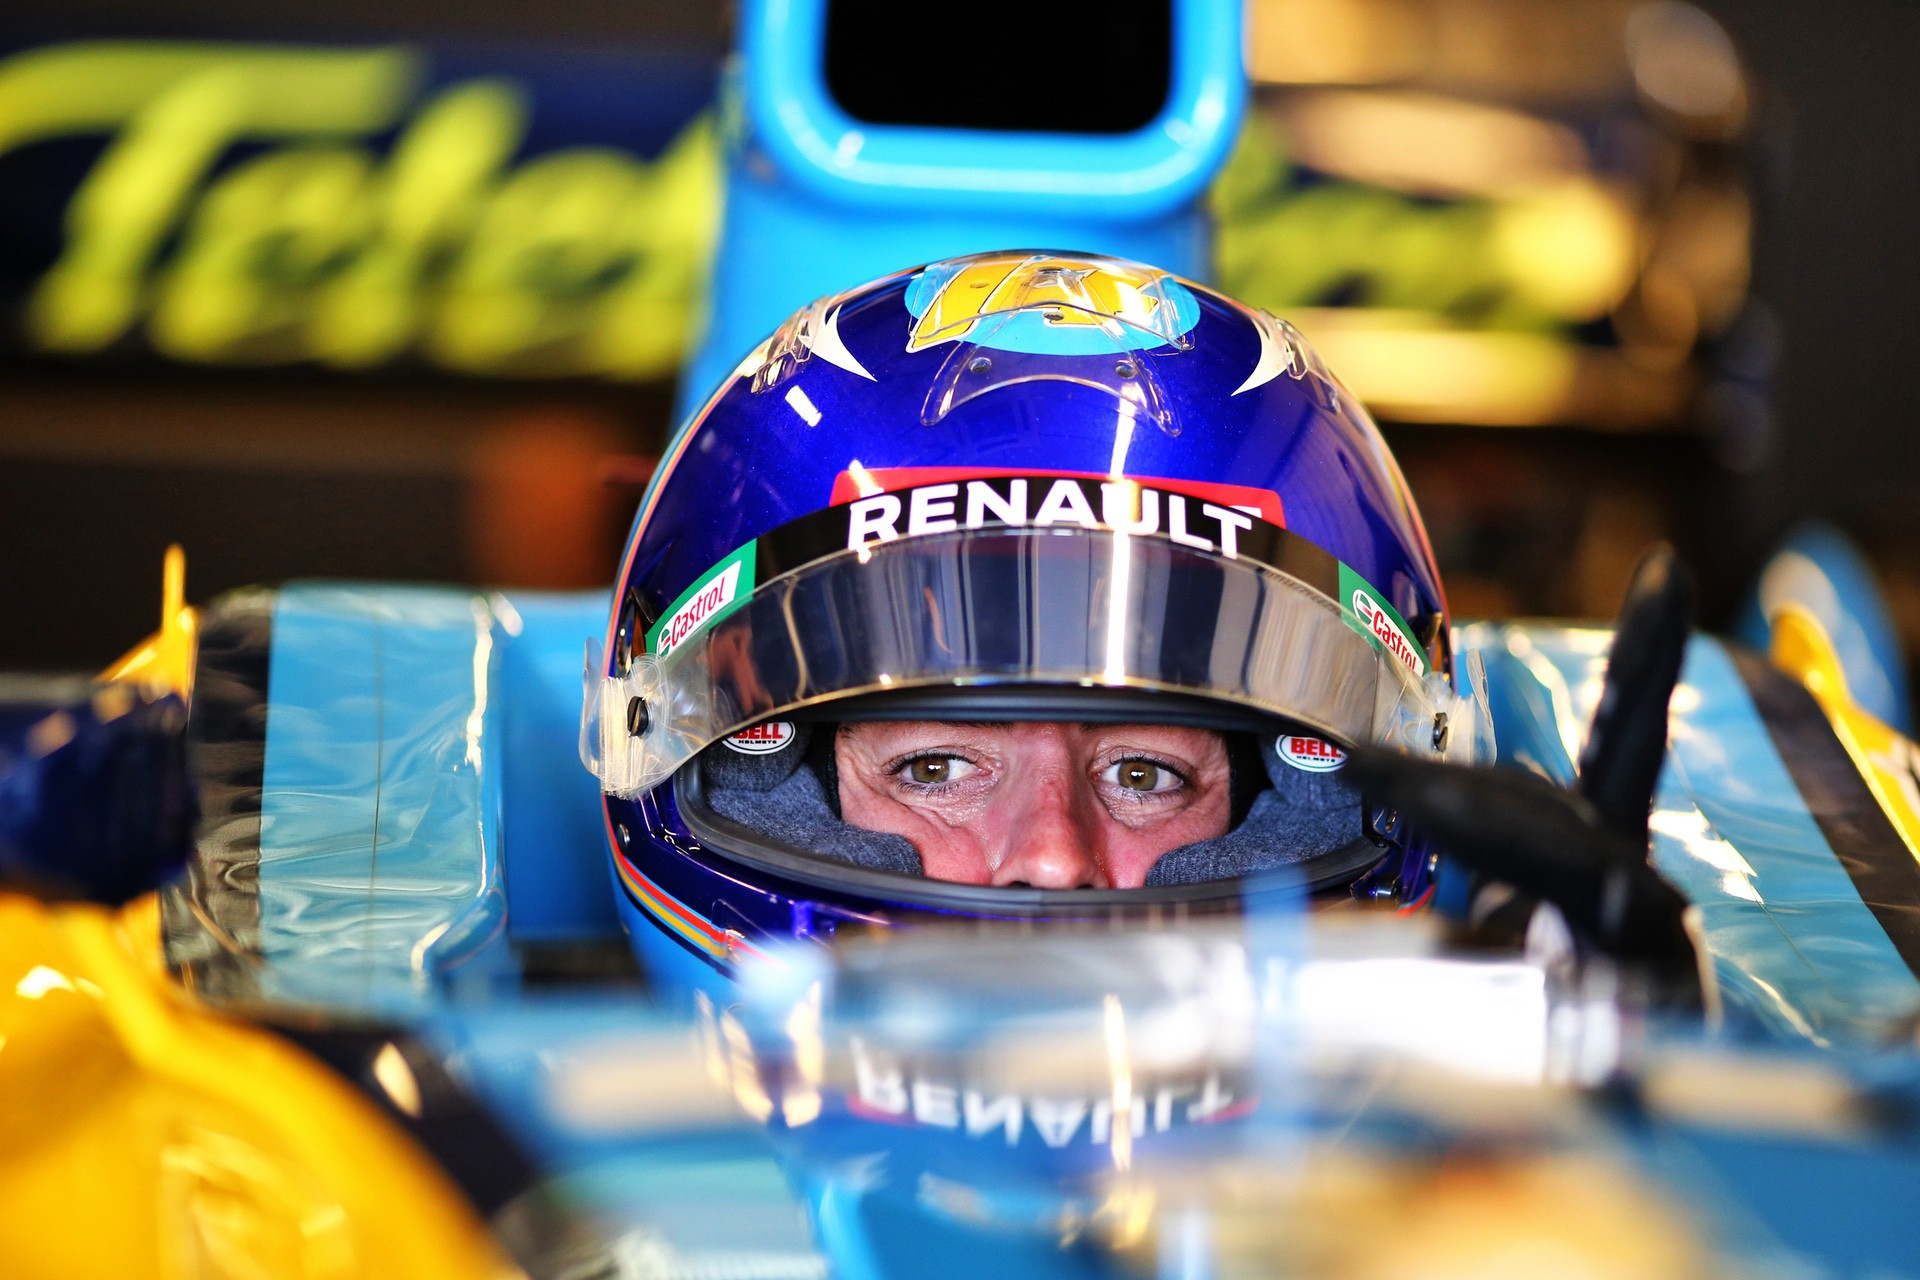 Alonso_Renault_RS25_0017